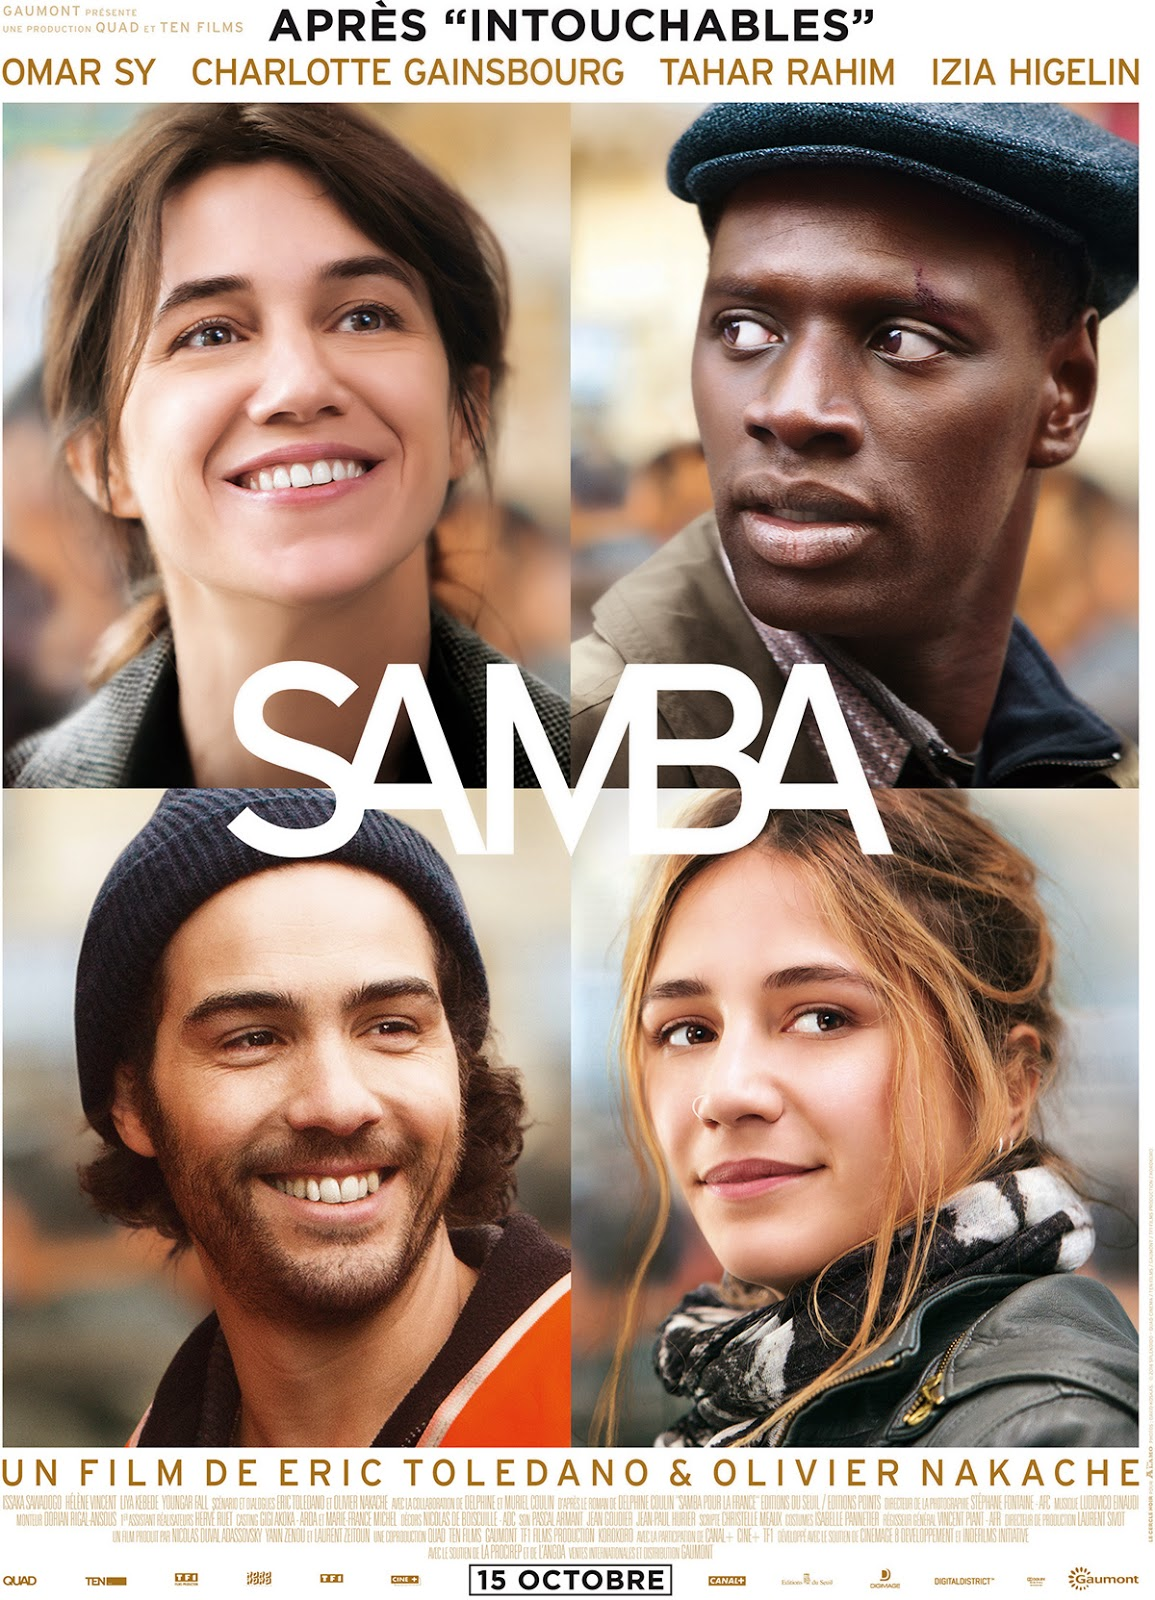 Affiche du film Samba. Source: allocine.fr